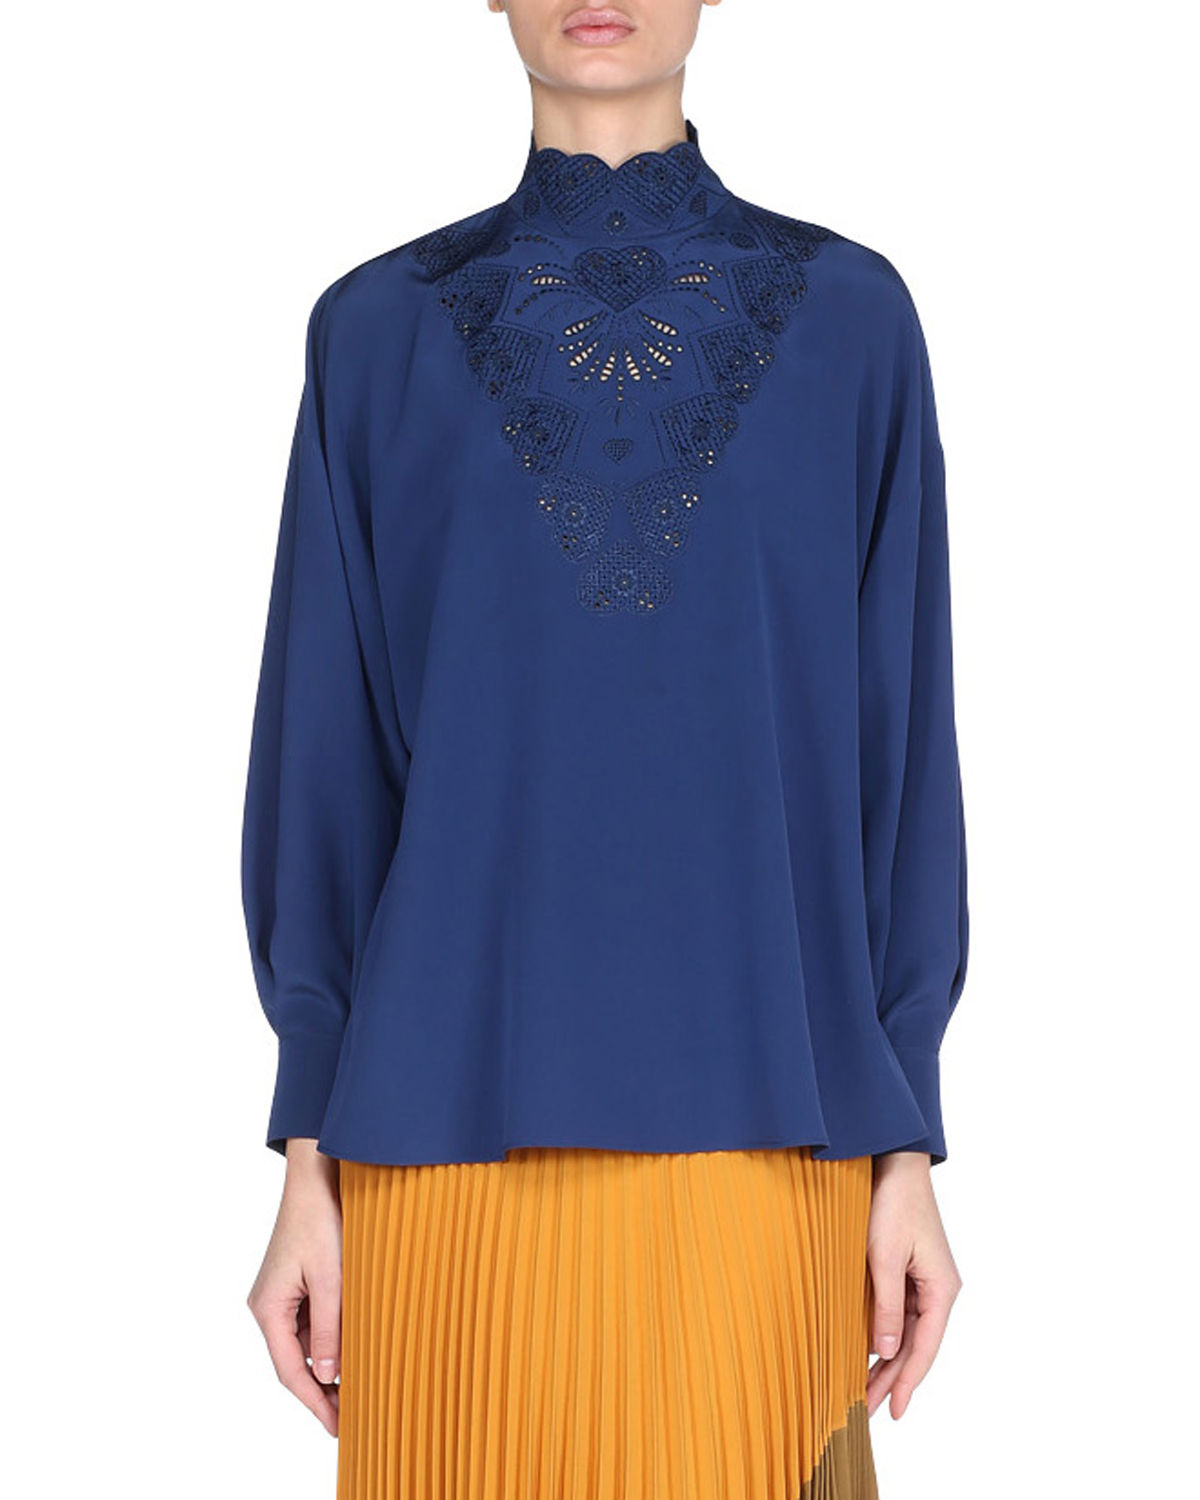 Fendi Long Sleeve High Neck Silk Blouse with Heart Embroidery | Top and Clothing